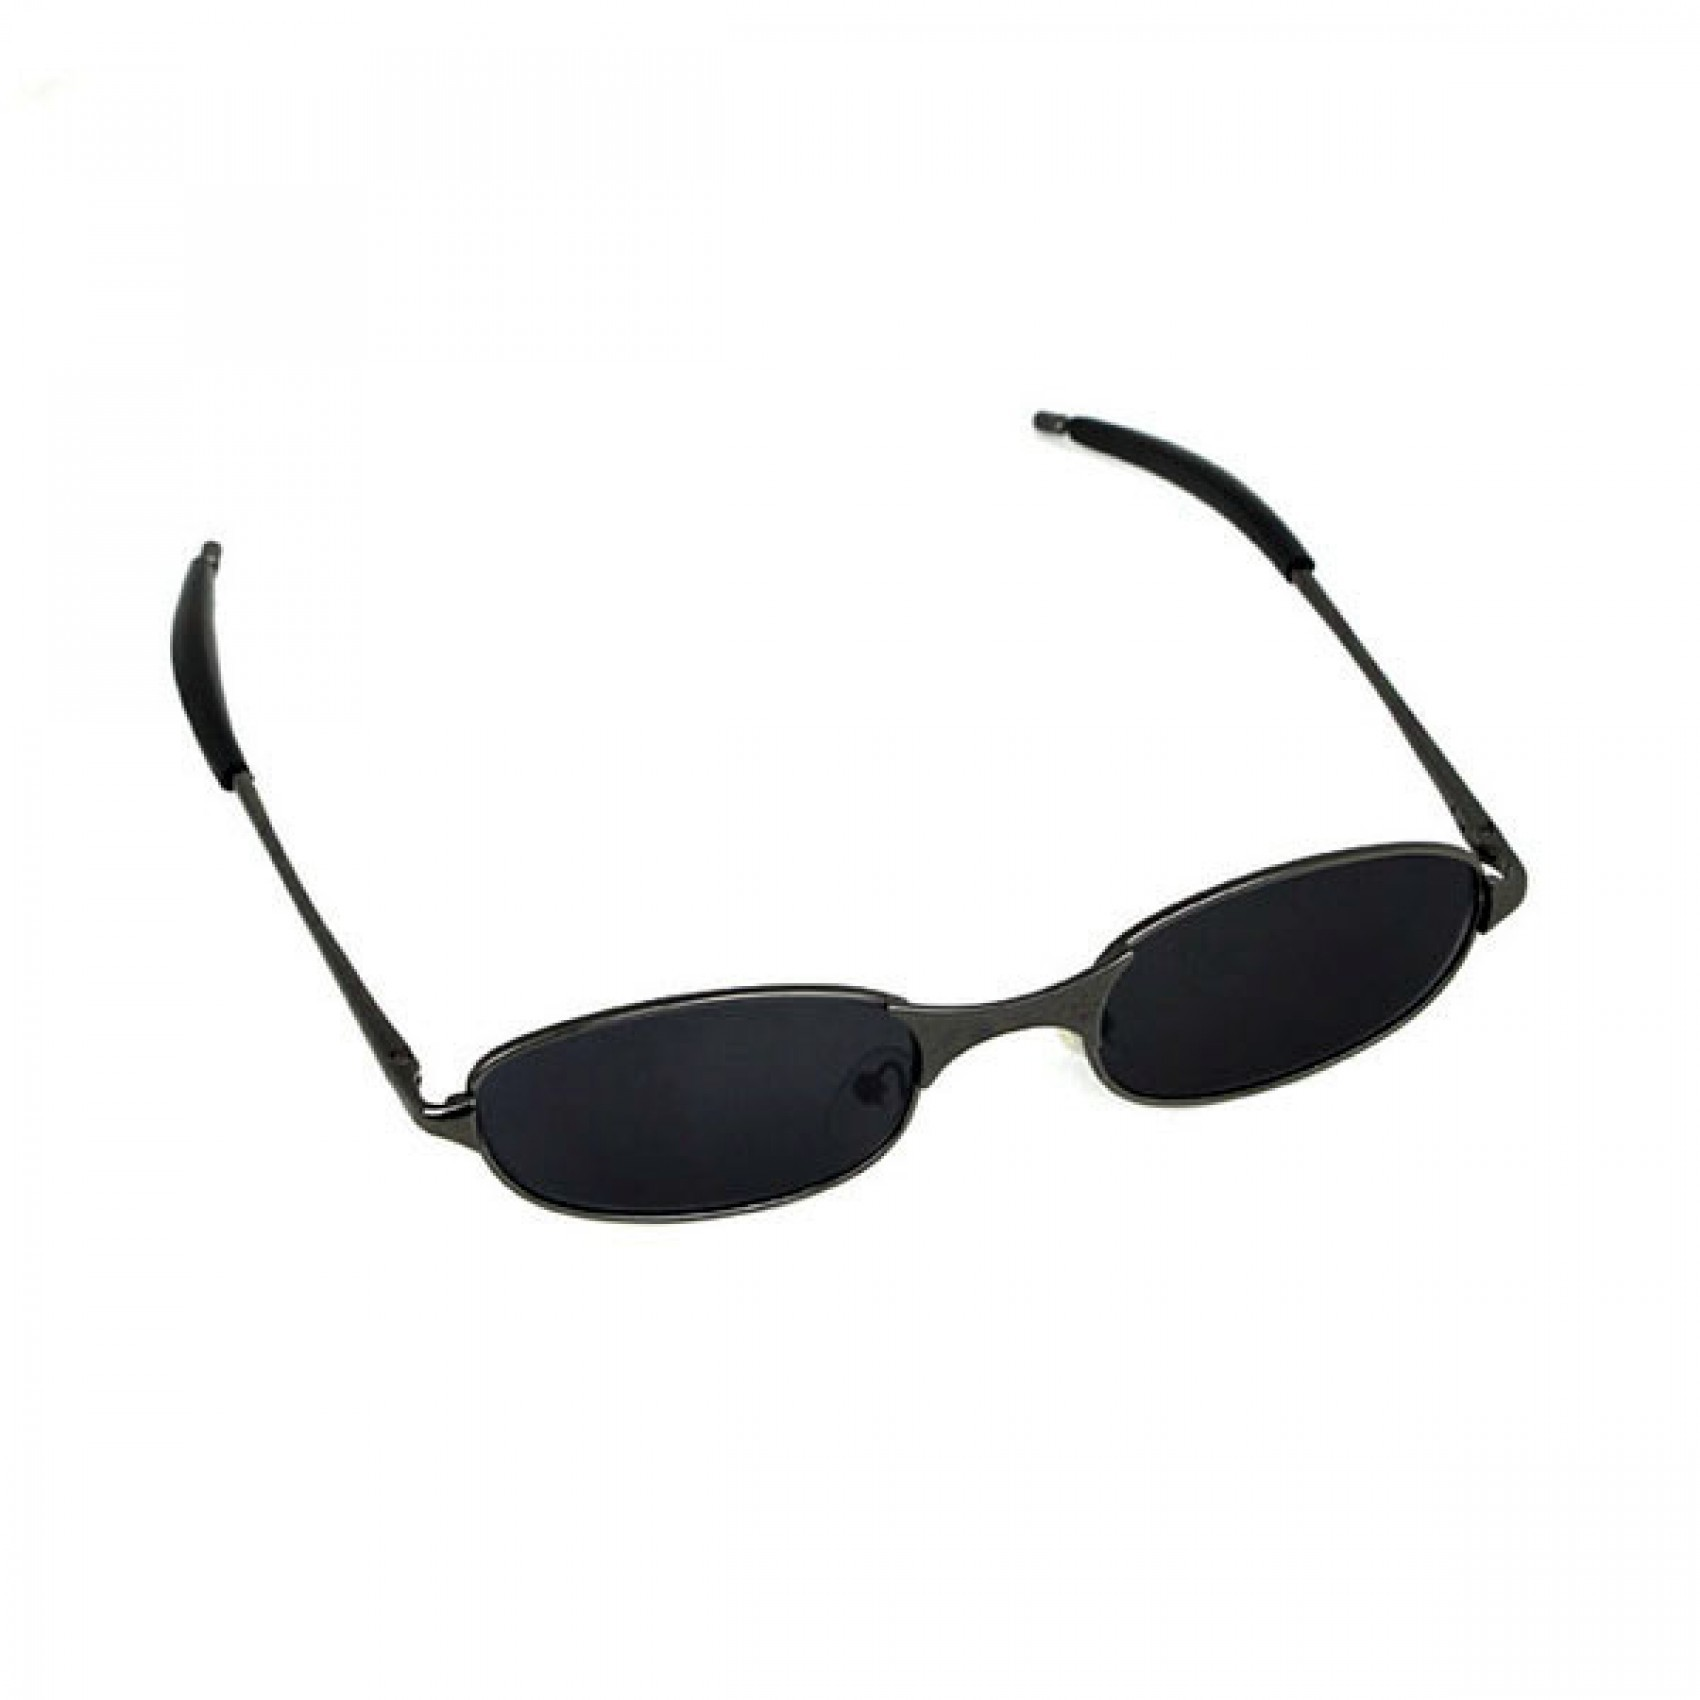 65130f0bc2 ... Spy Sunglass With Rear View - Black